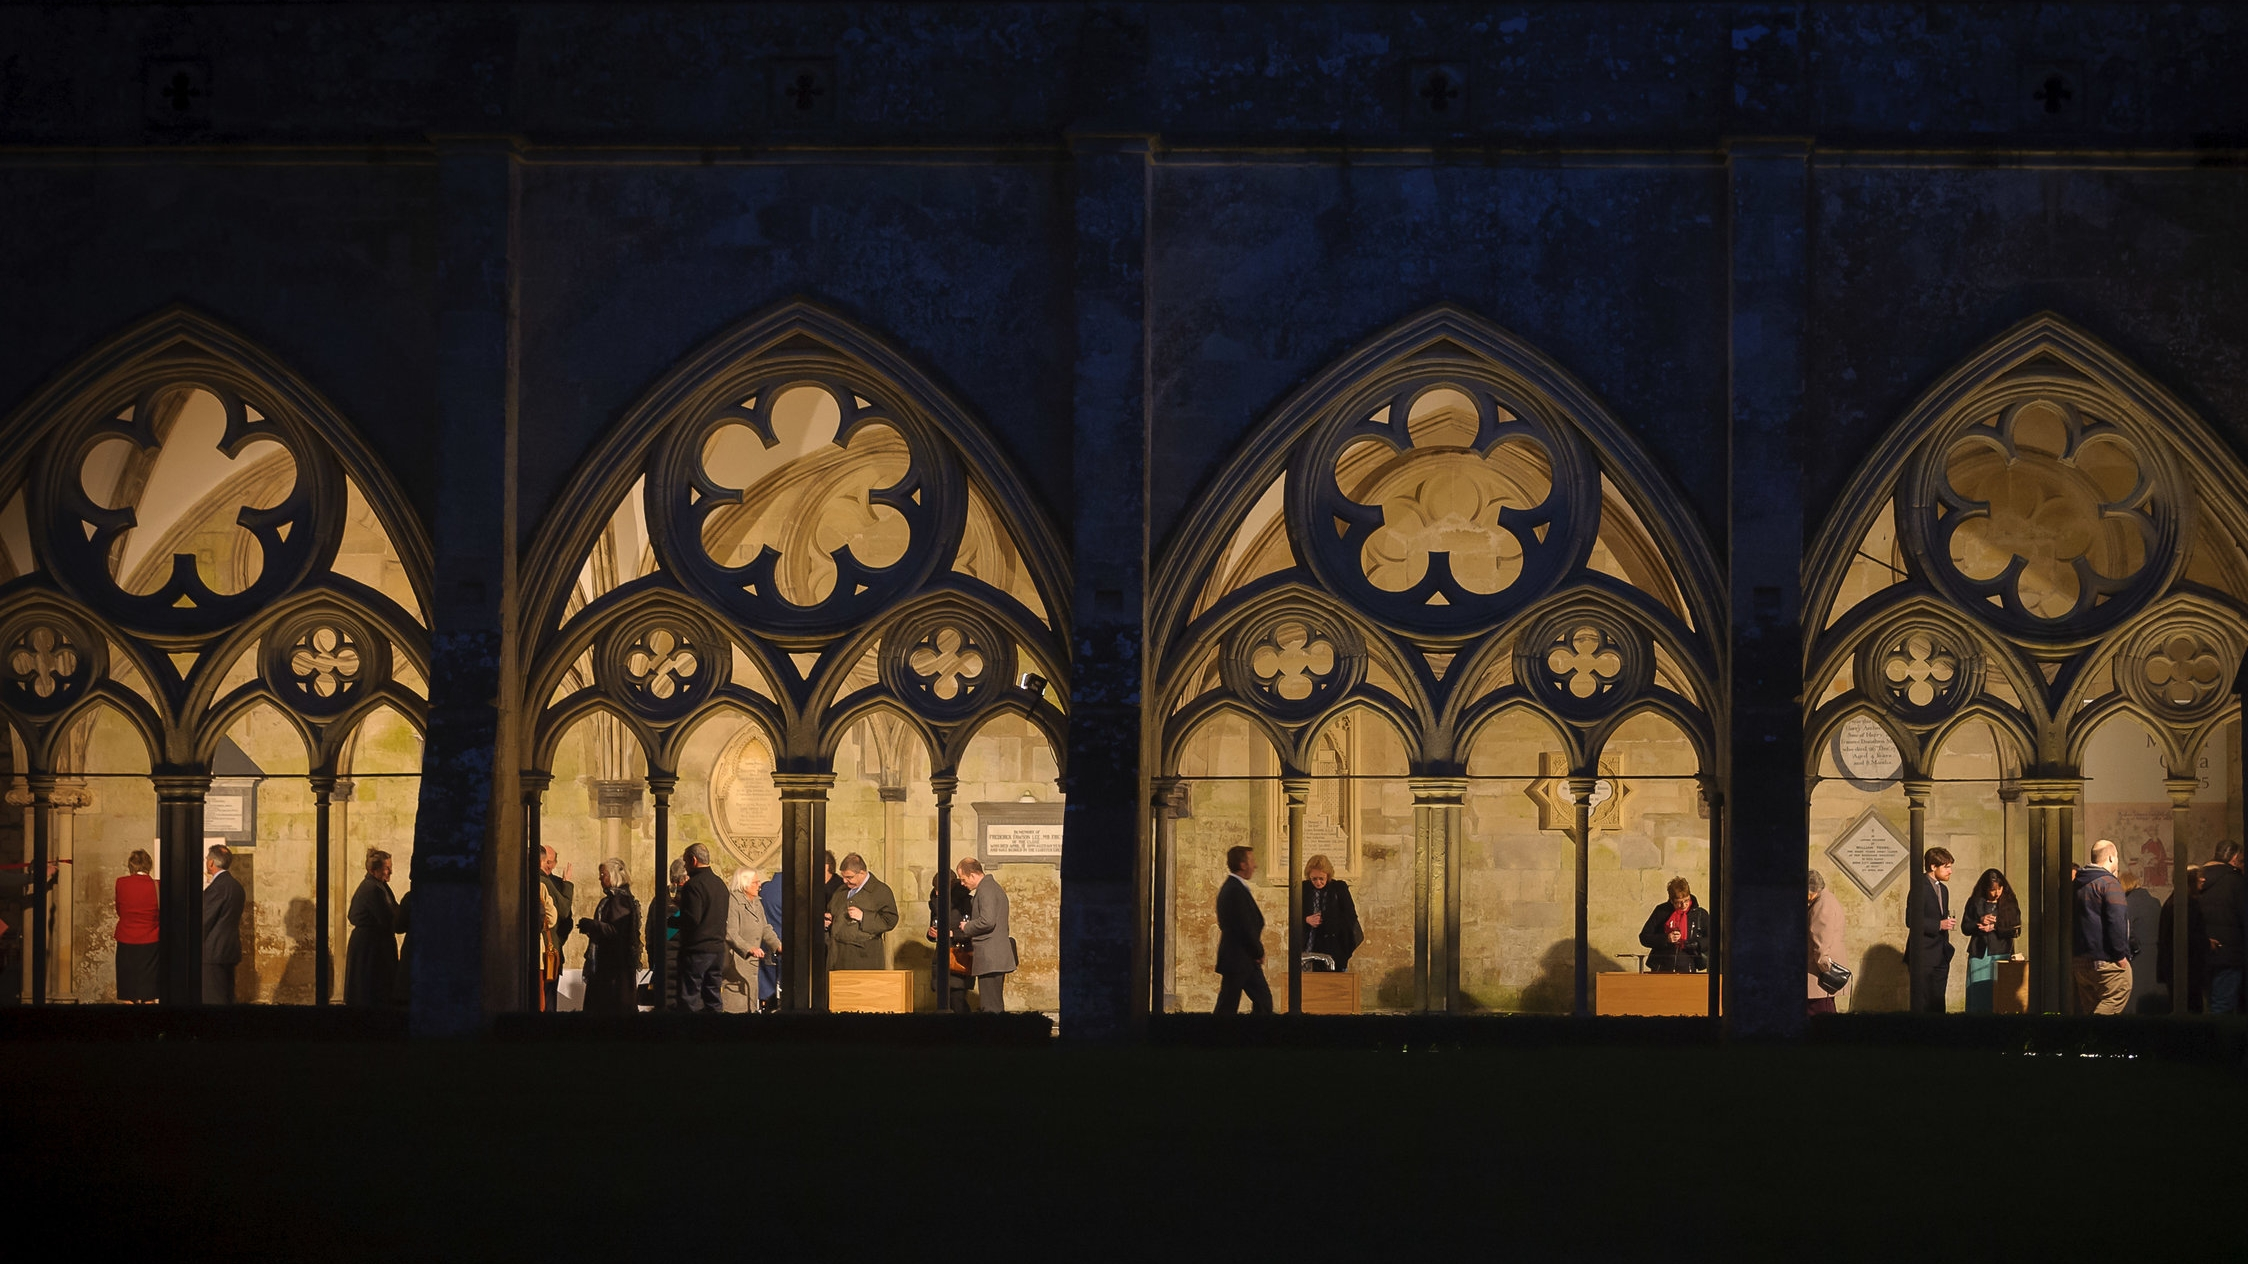 The exquisite medieval cloisters of Salisbury Cathedral are the location for this year's event